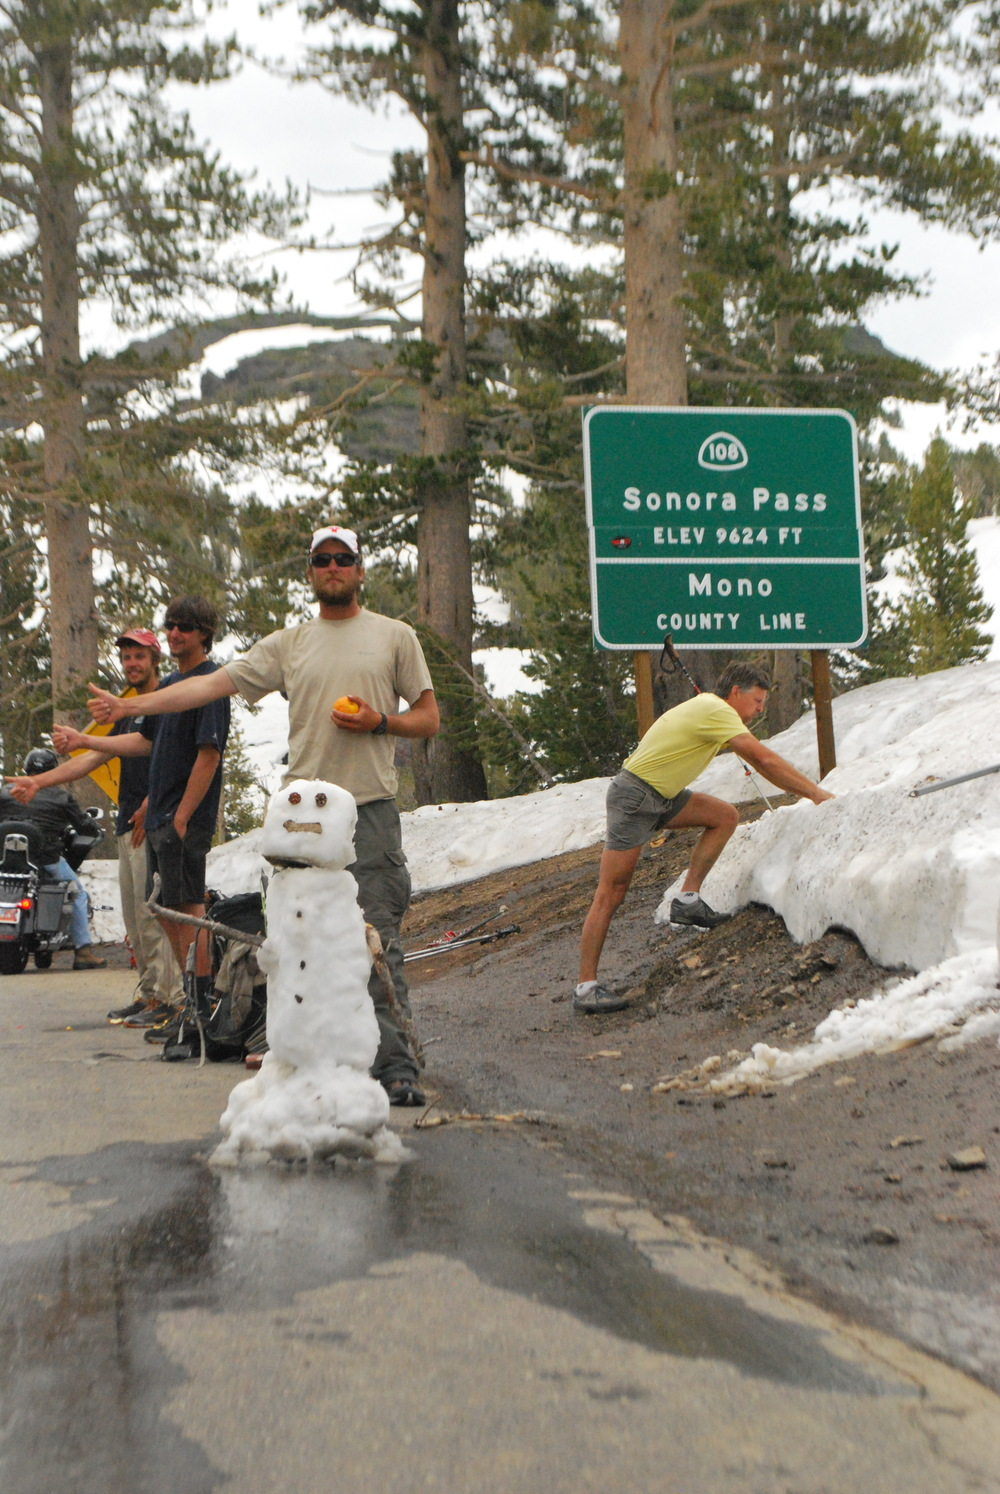 Sonora Pass with hitchhiking snowman and lunging day-hiker.